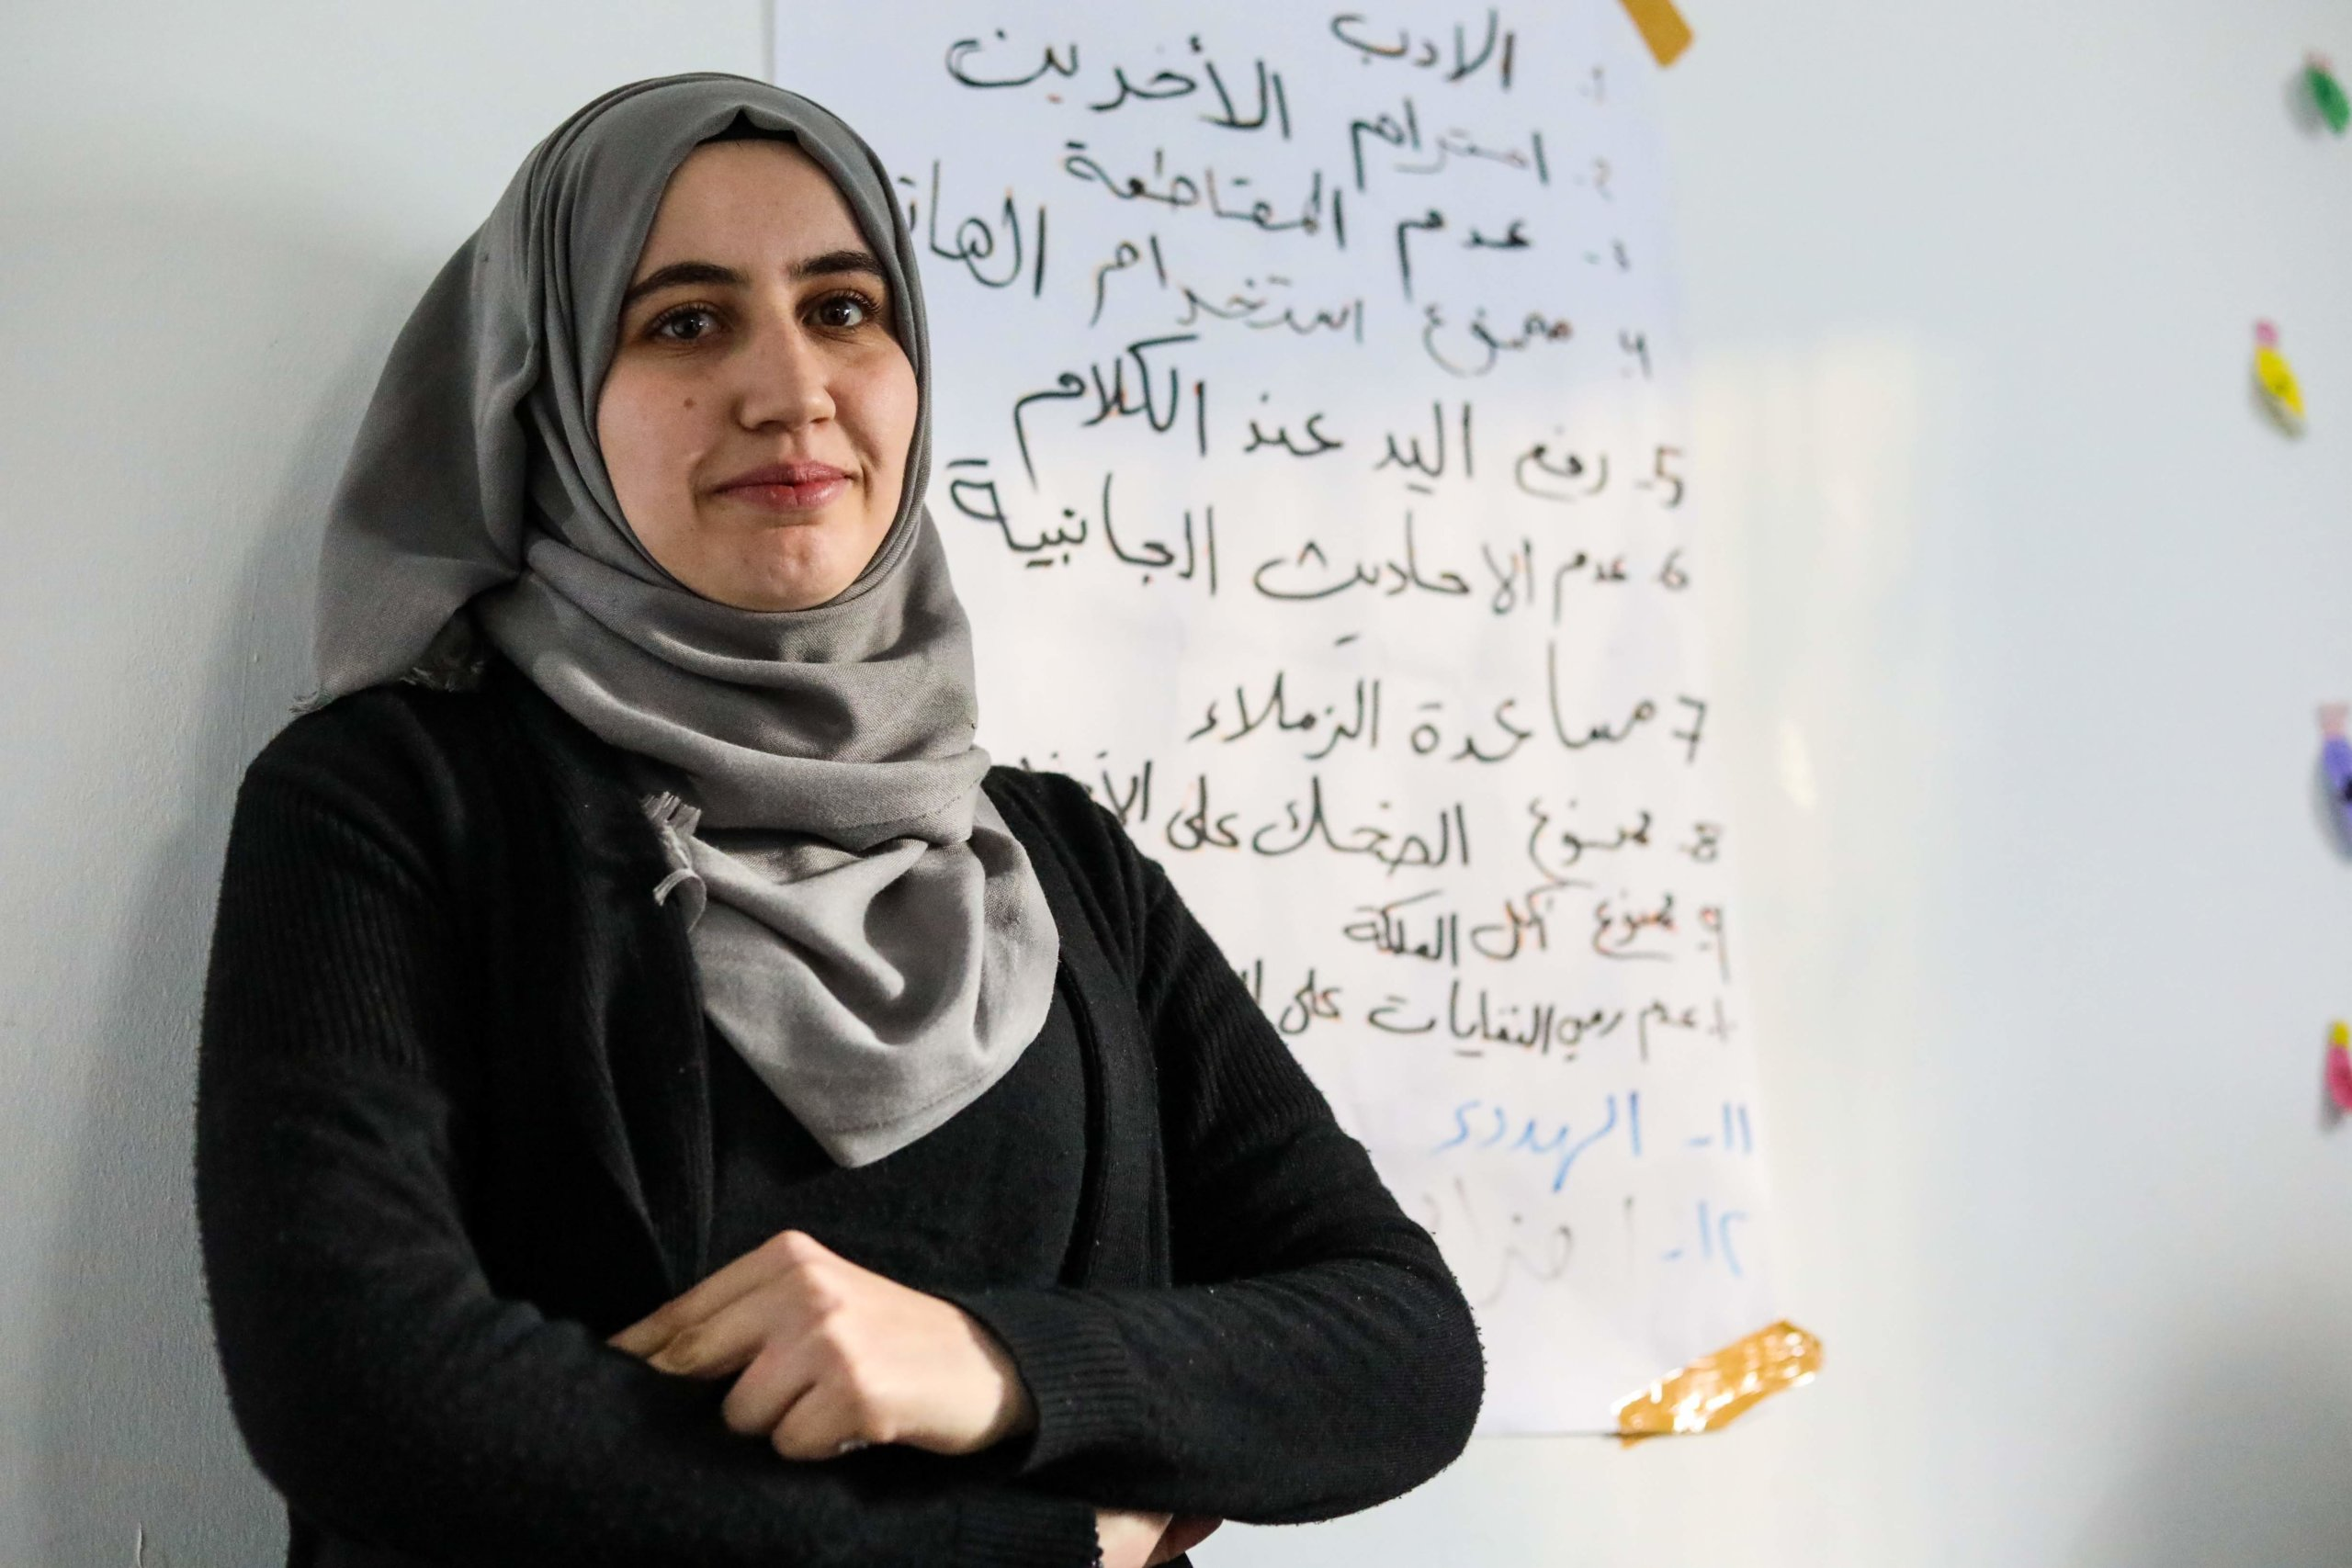 Refugee student stands at whiteboard with arabic text in study centre